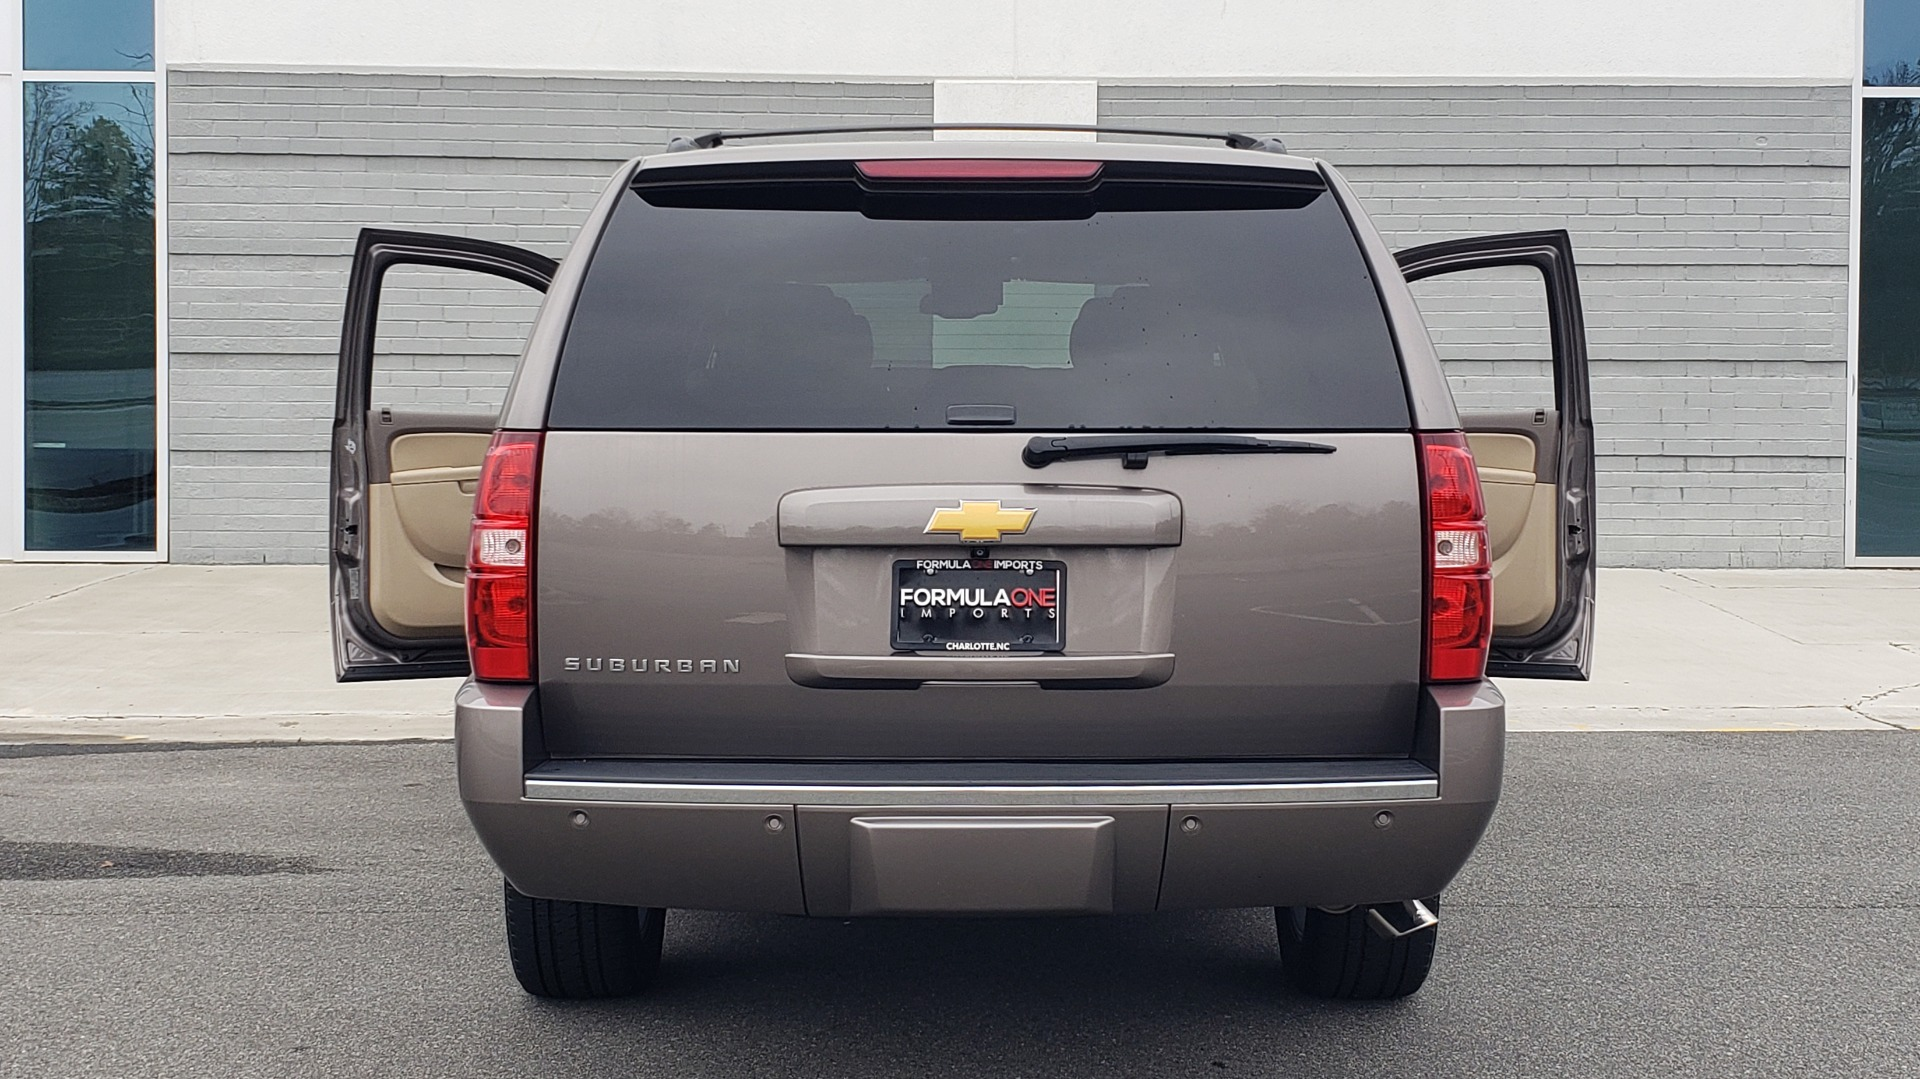 Used 2014 Chevrolet SUBURBAN LTZ / 4WD / ENTERTAINMENT / NAV / SUNROOF / TRAILER PKG for sale Sold at Formula Imports in Charlotte NC 28227 27